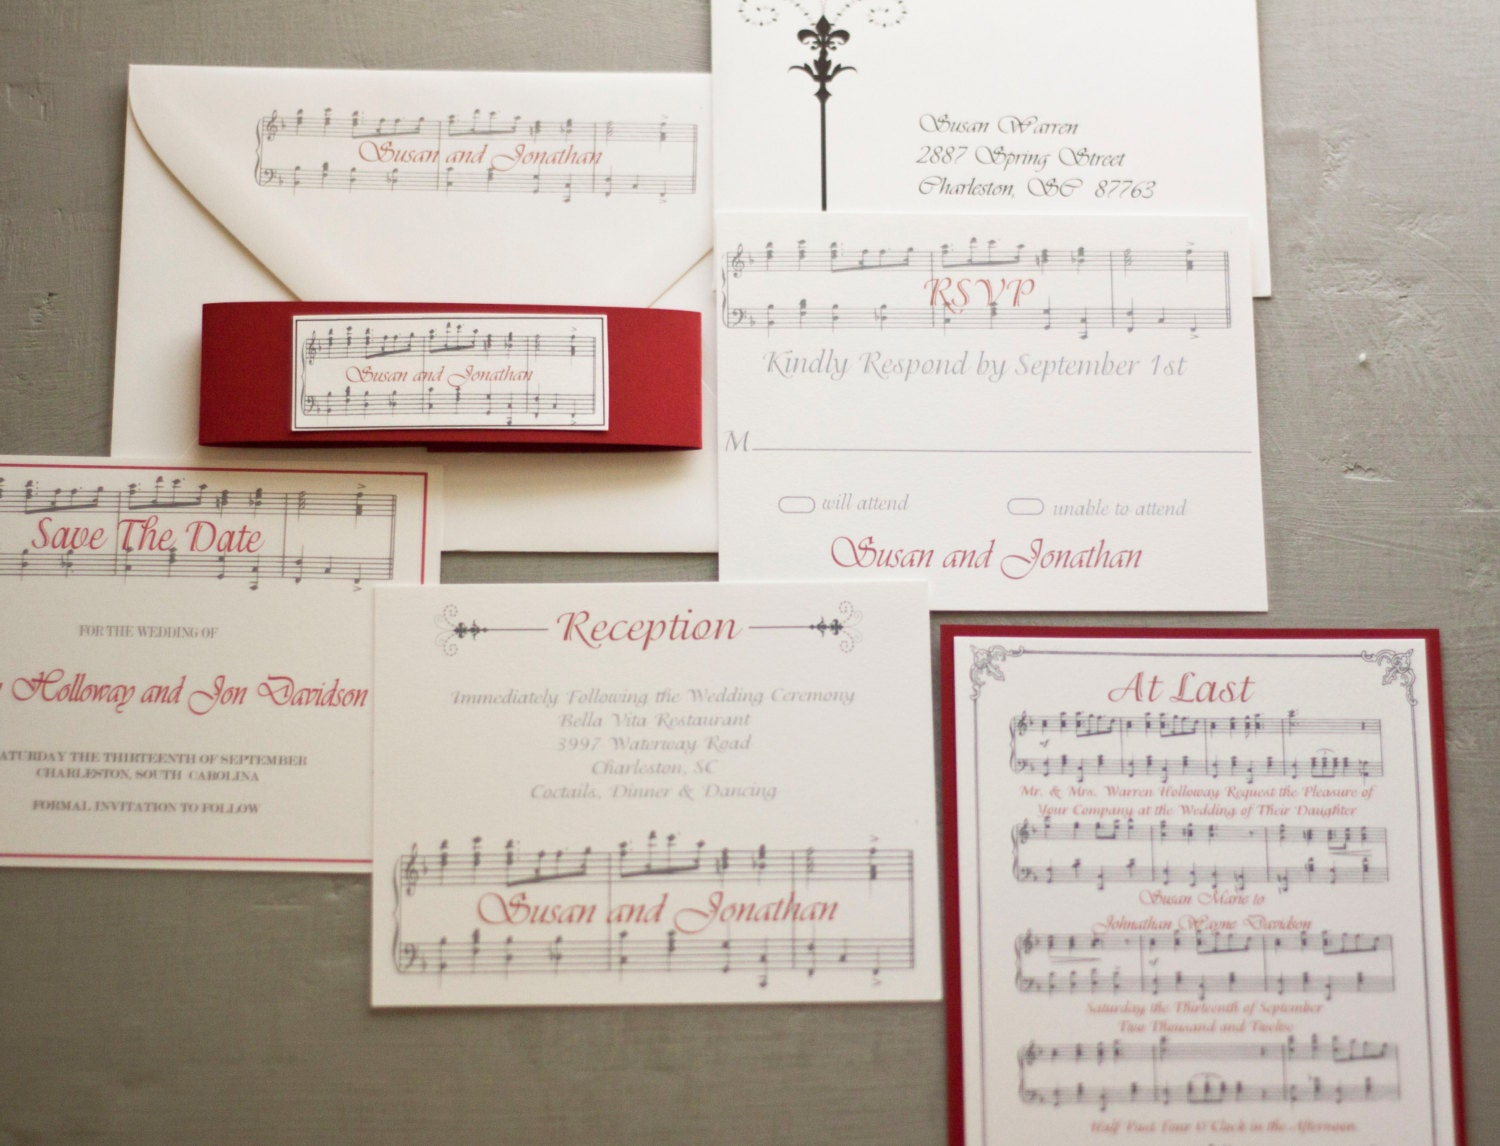 Invitation Note For Wedding: Vintage Style Romantic Music Notes Wedding Invitation By